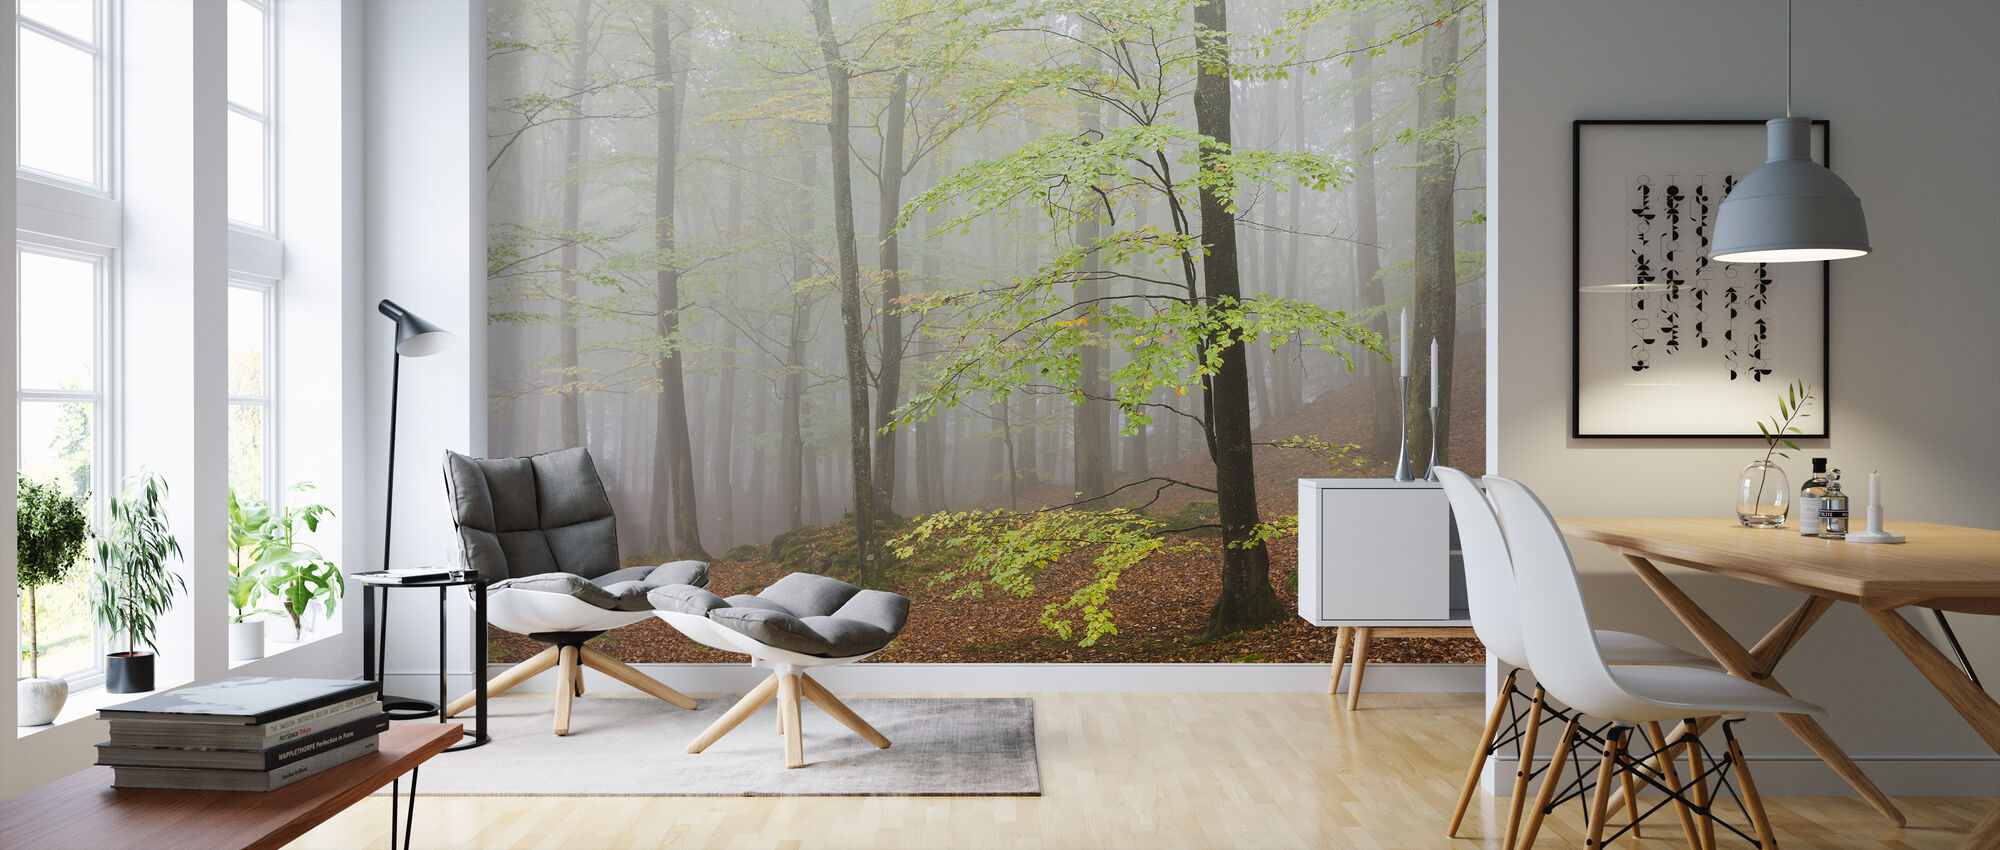 Clowing Hallar Beech Forest, Sweden I, Europe - Wallpaper - Living Room